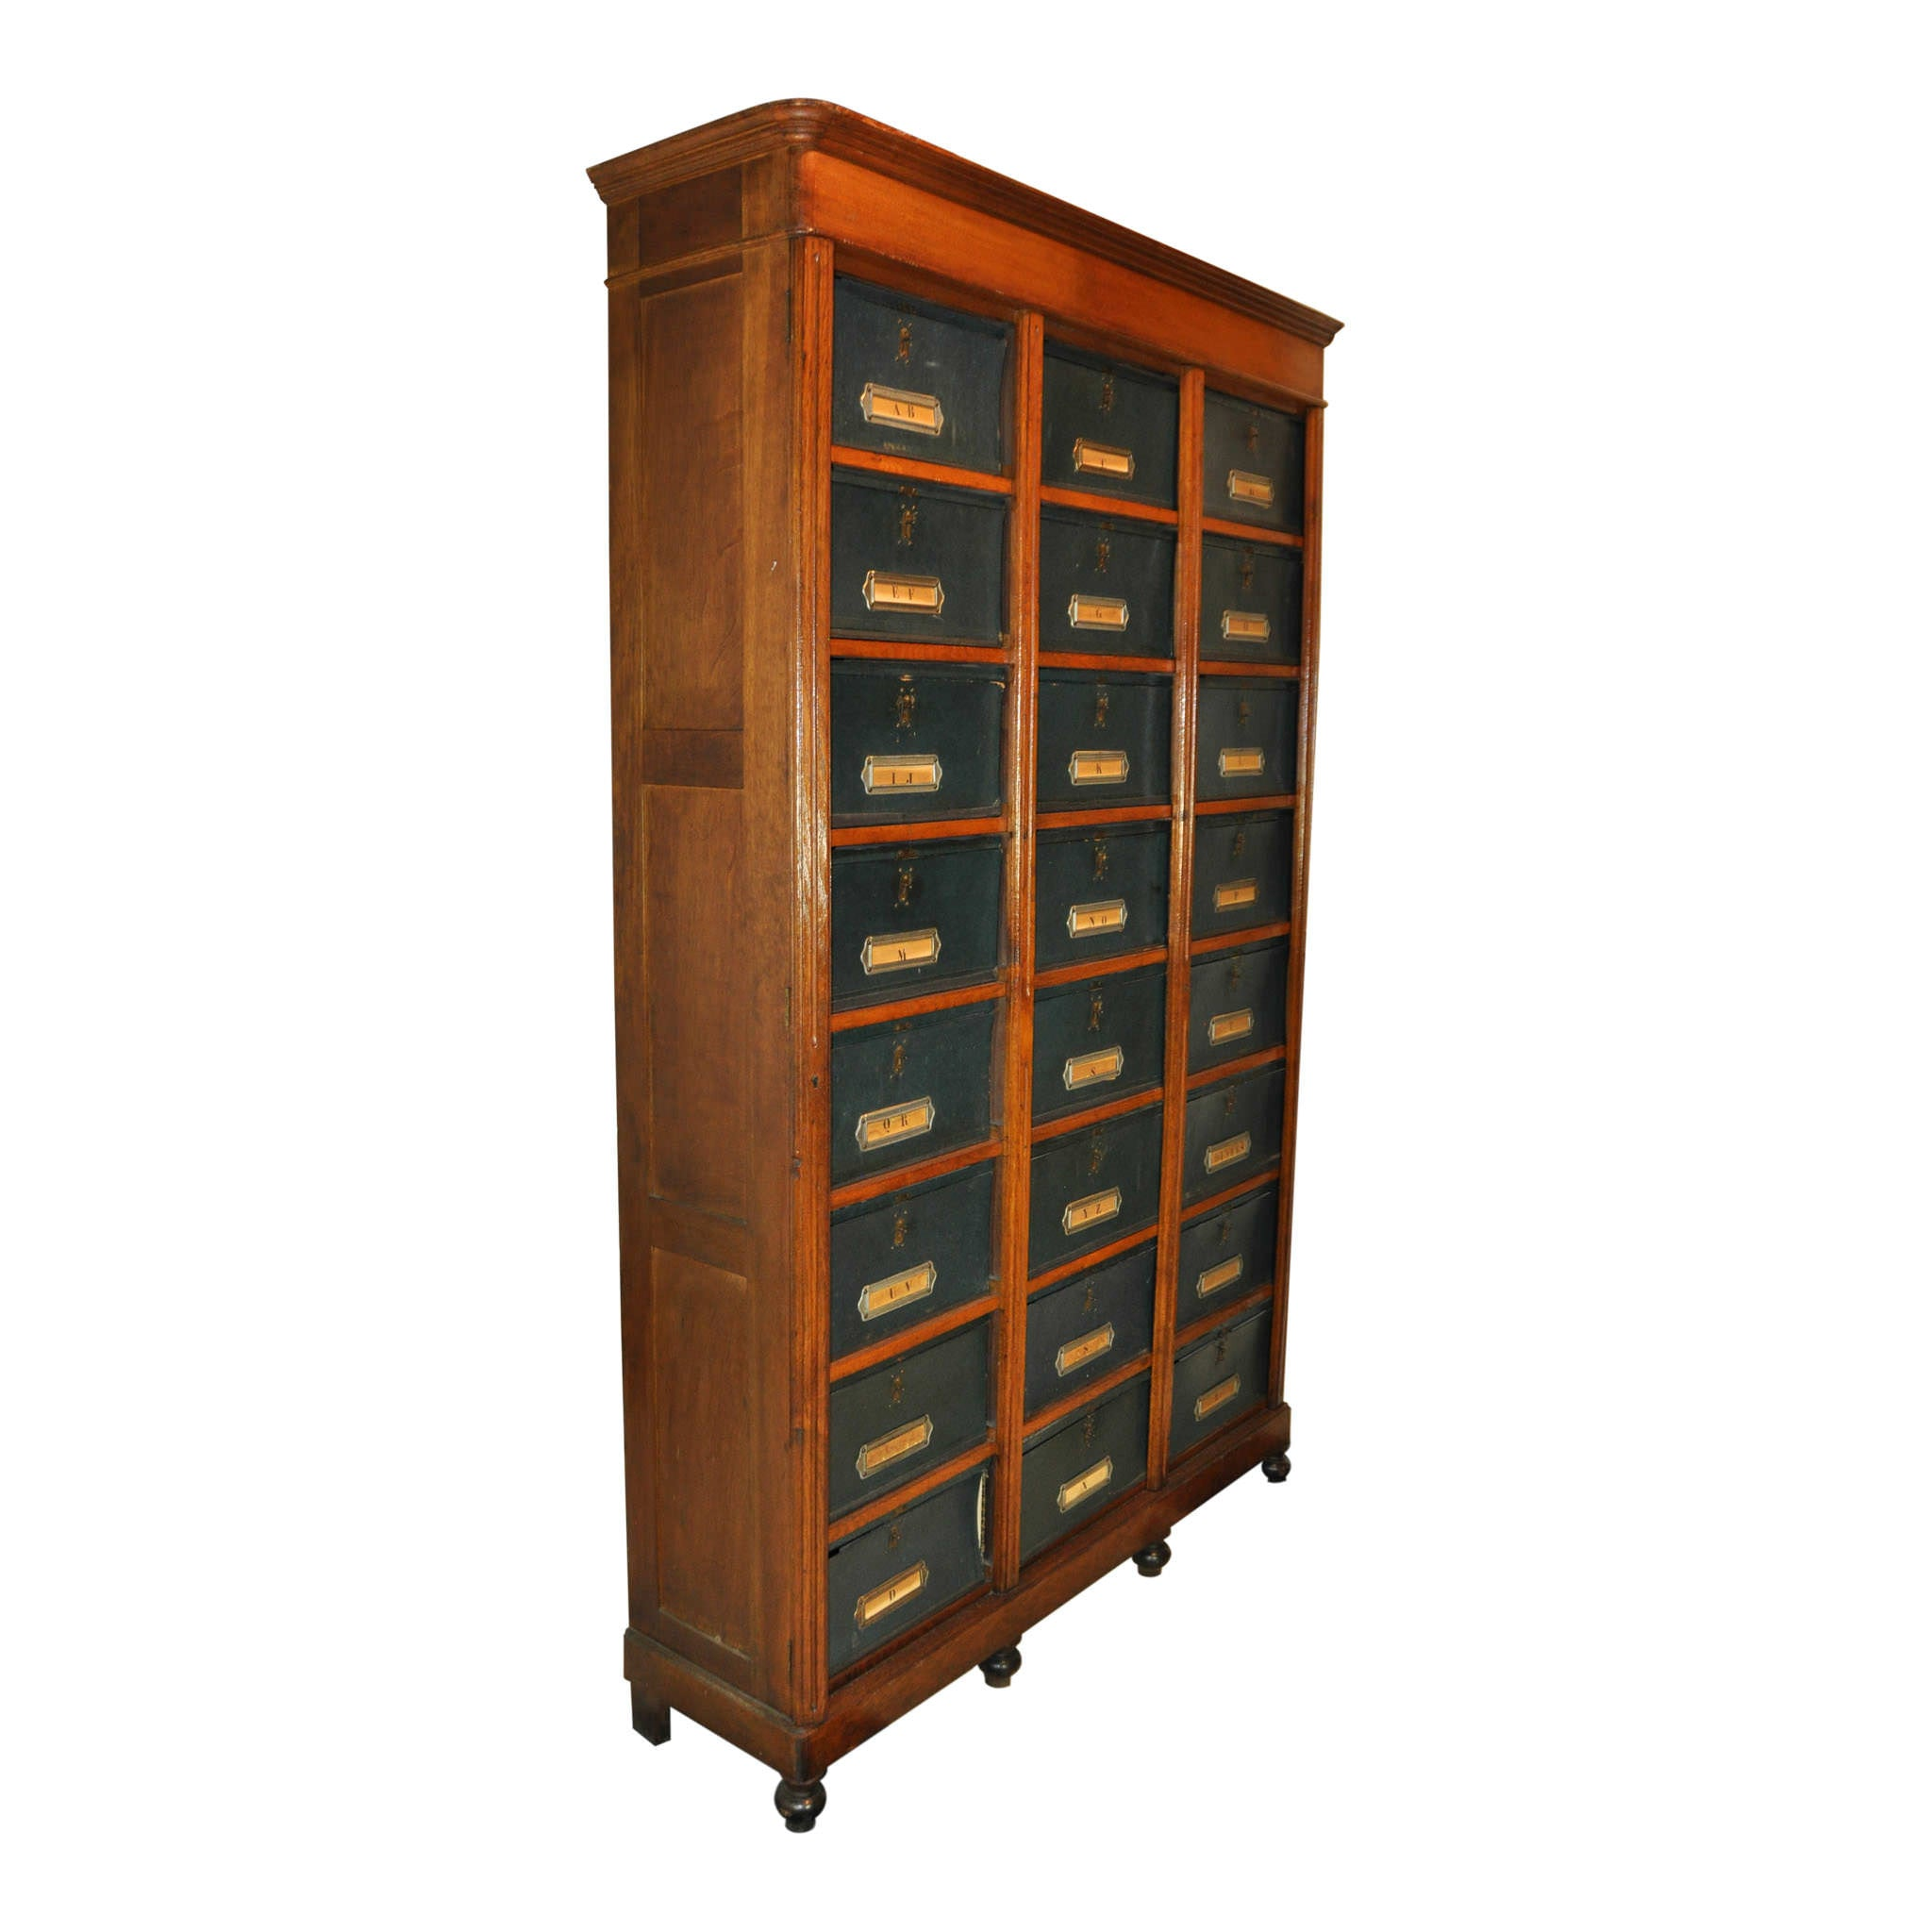 File Cabinet with Drawers (1stdibs)